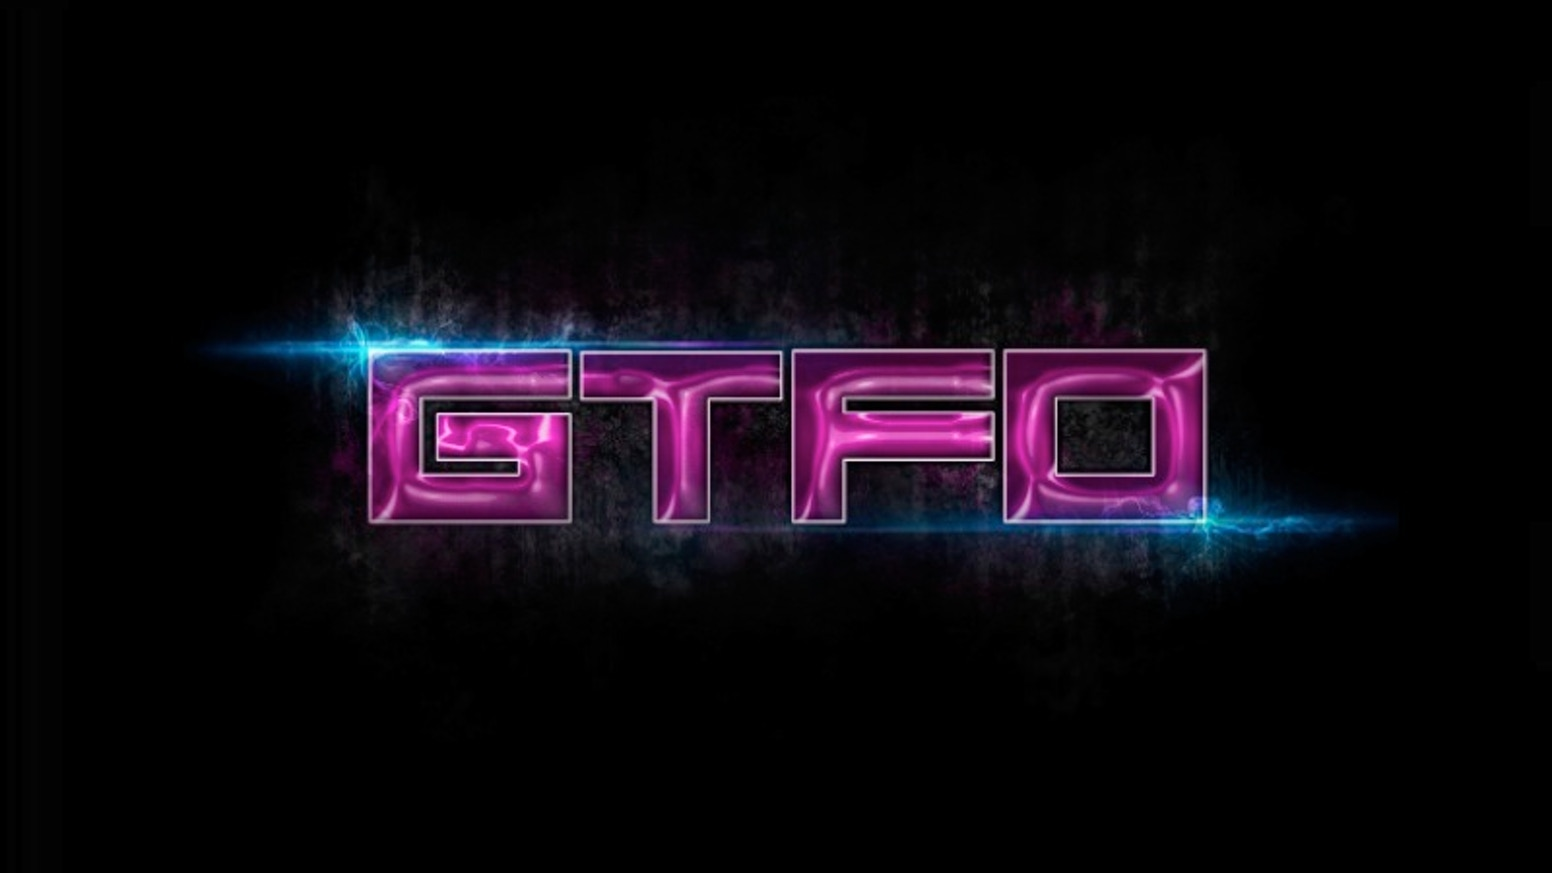 GTFO is a film exposing the harassment of women in video games. It features gamers, bloggers, scholars, developers, and other experts.